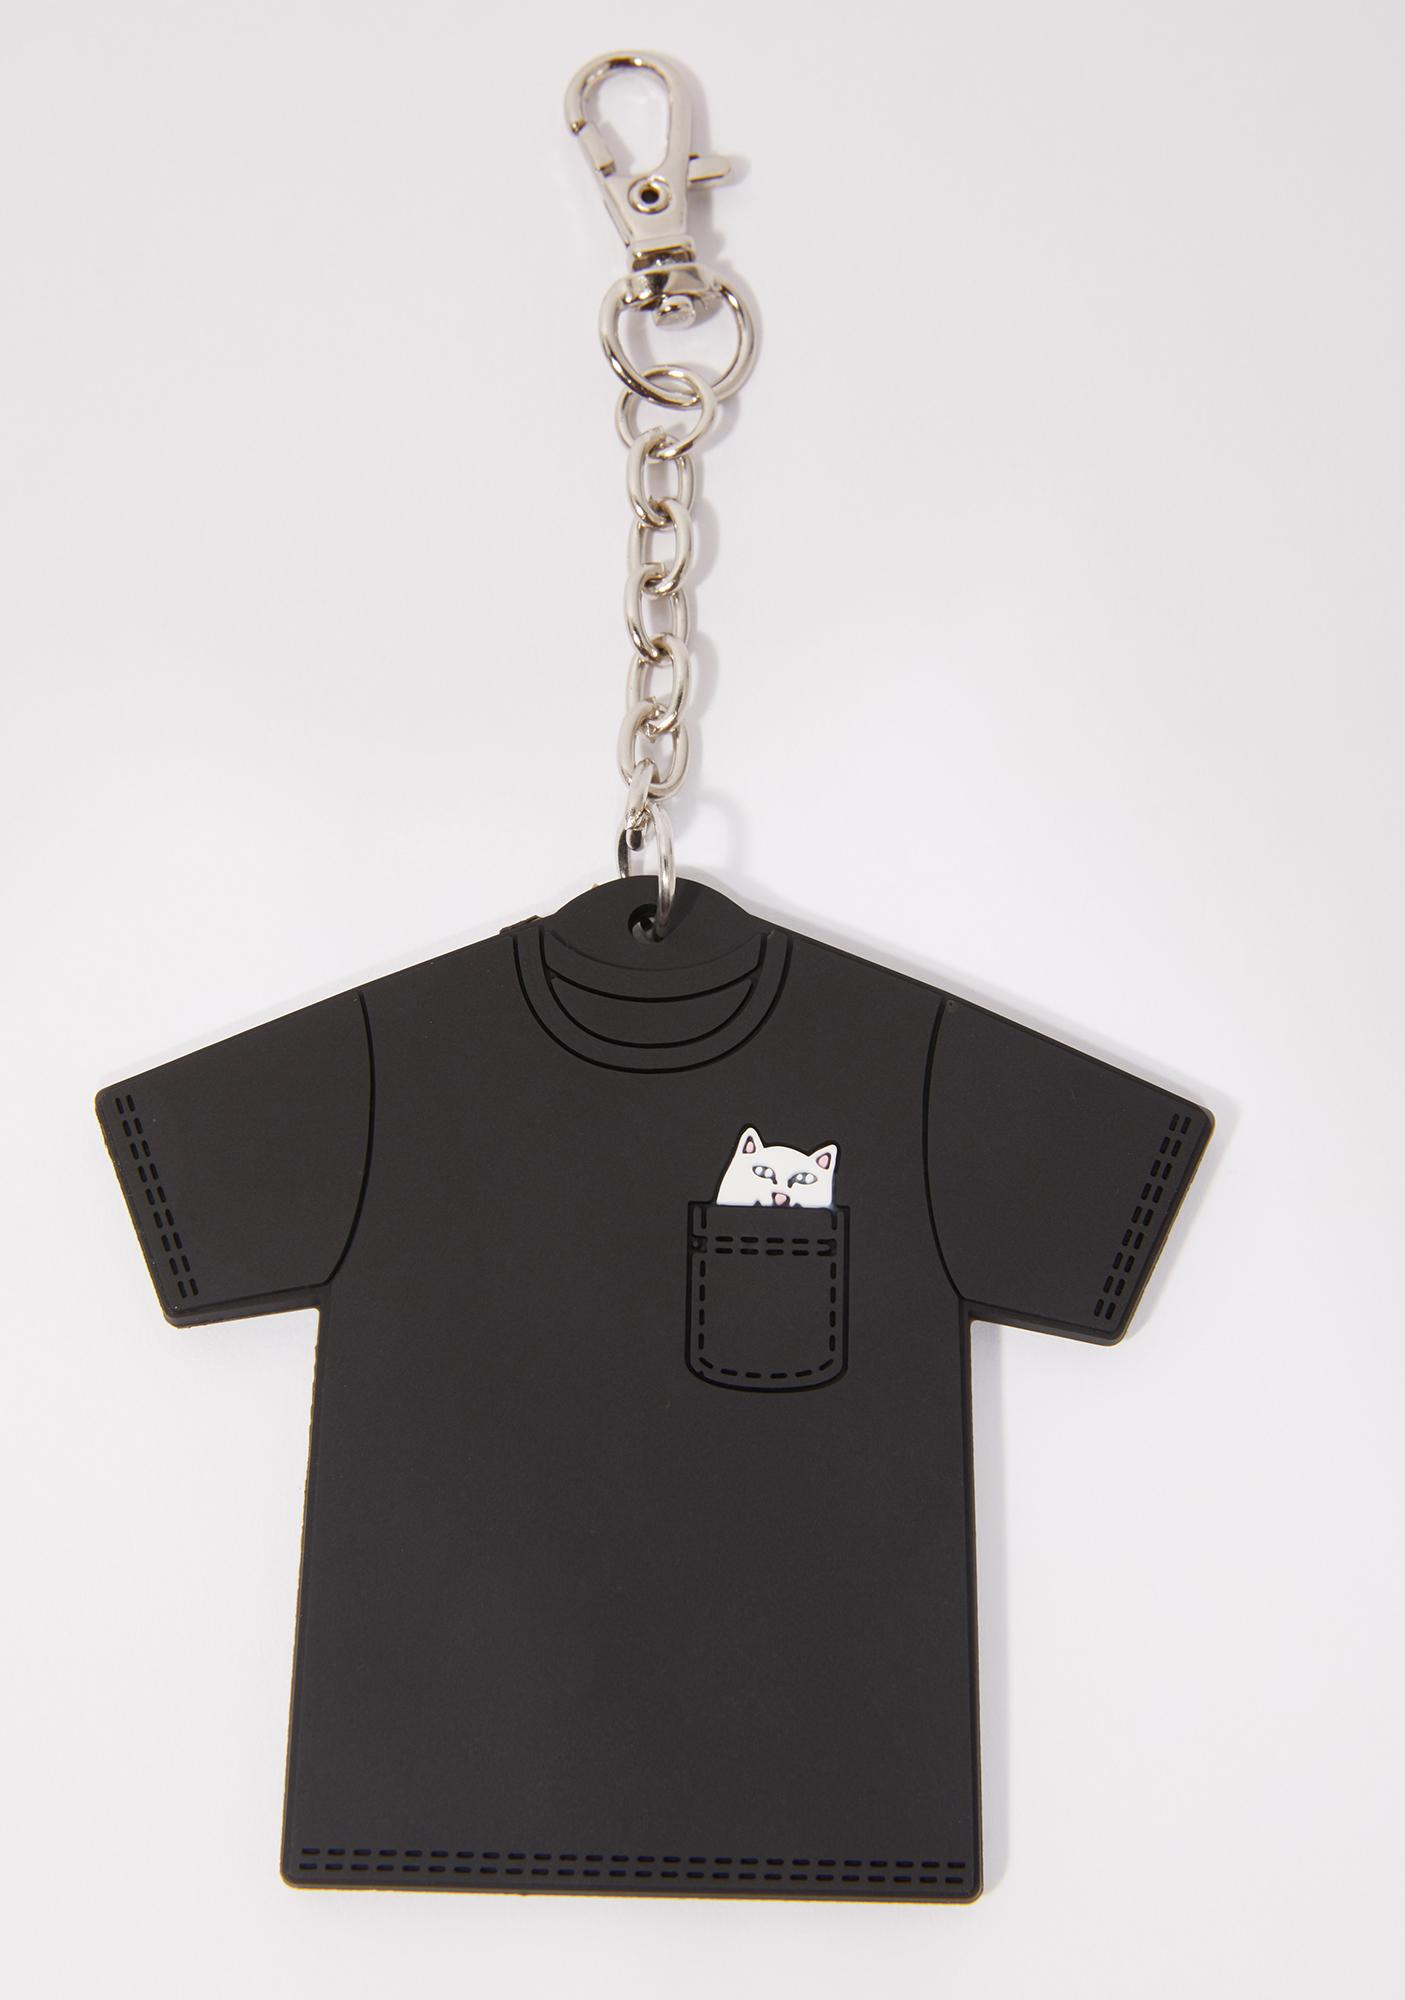 RIPNDIP Lord Nermal Mini Tee Keychain